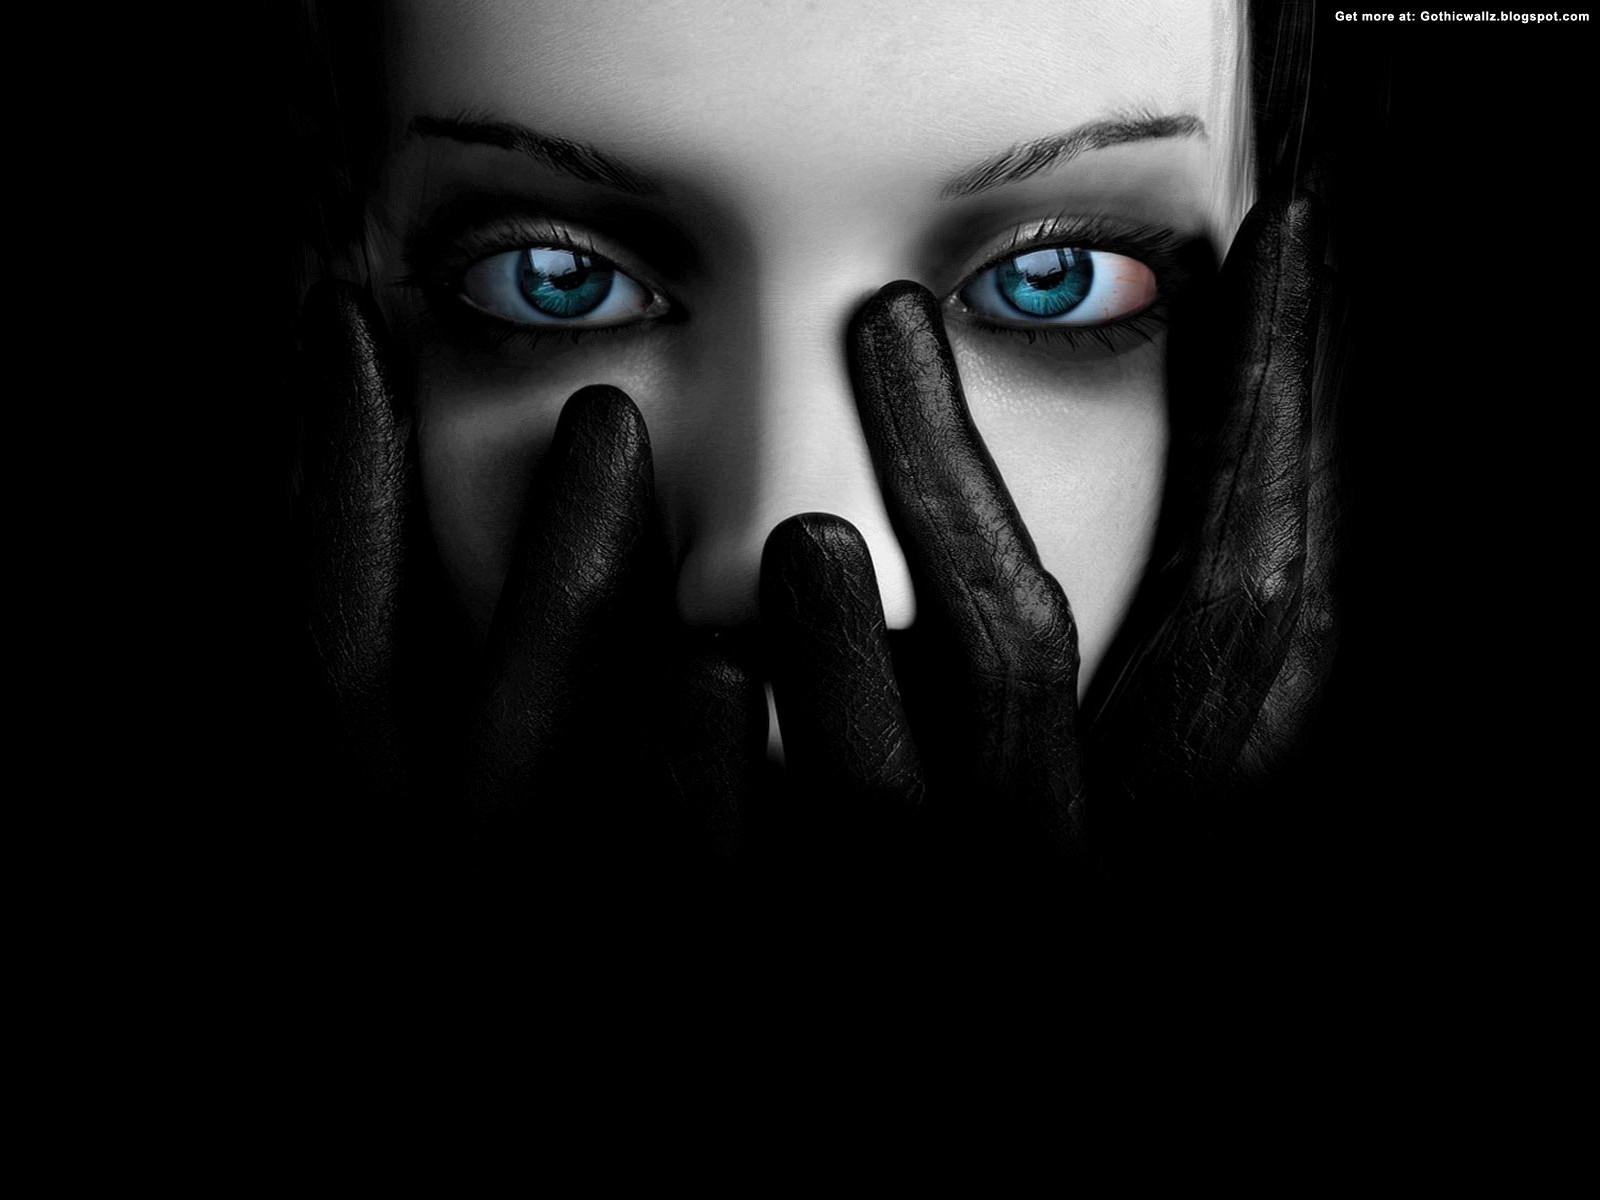 Dark Blue Eyed Girl Wallpaper